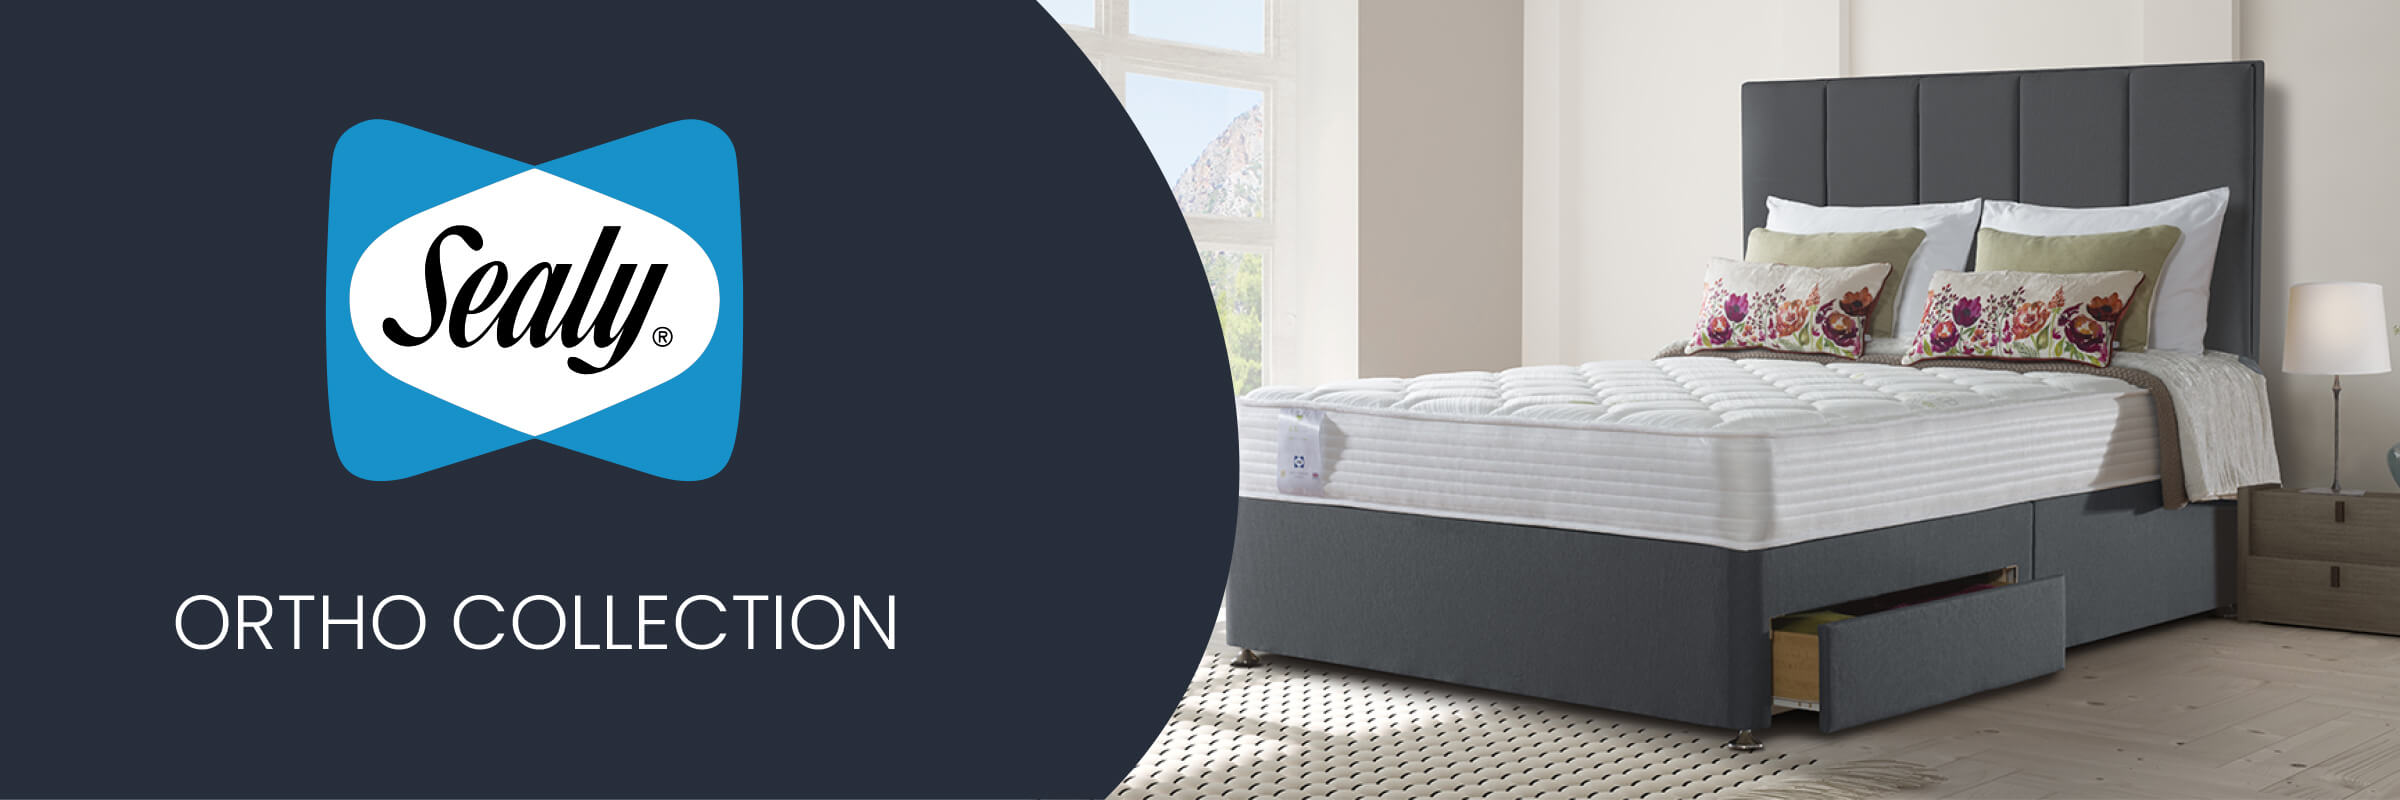 Sealy Ortho Collection mattresses and divan beds at Mattress Online